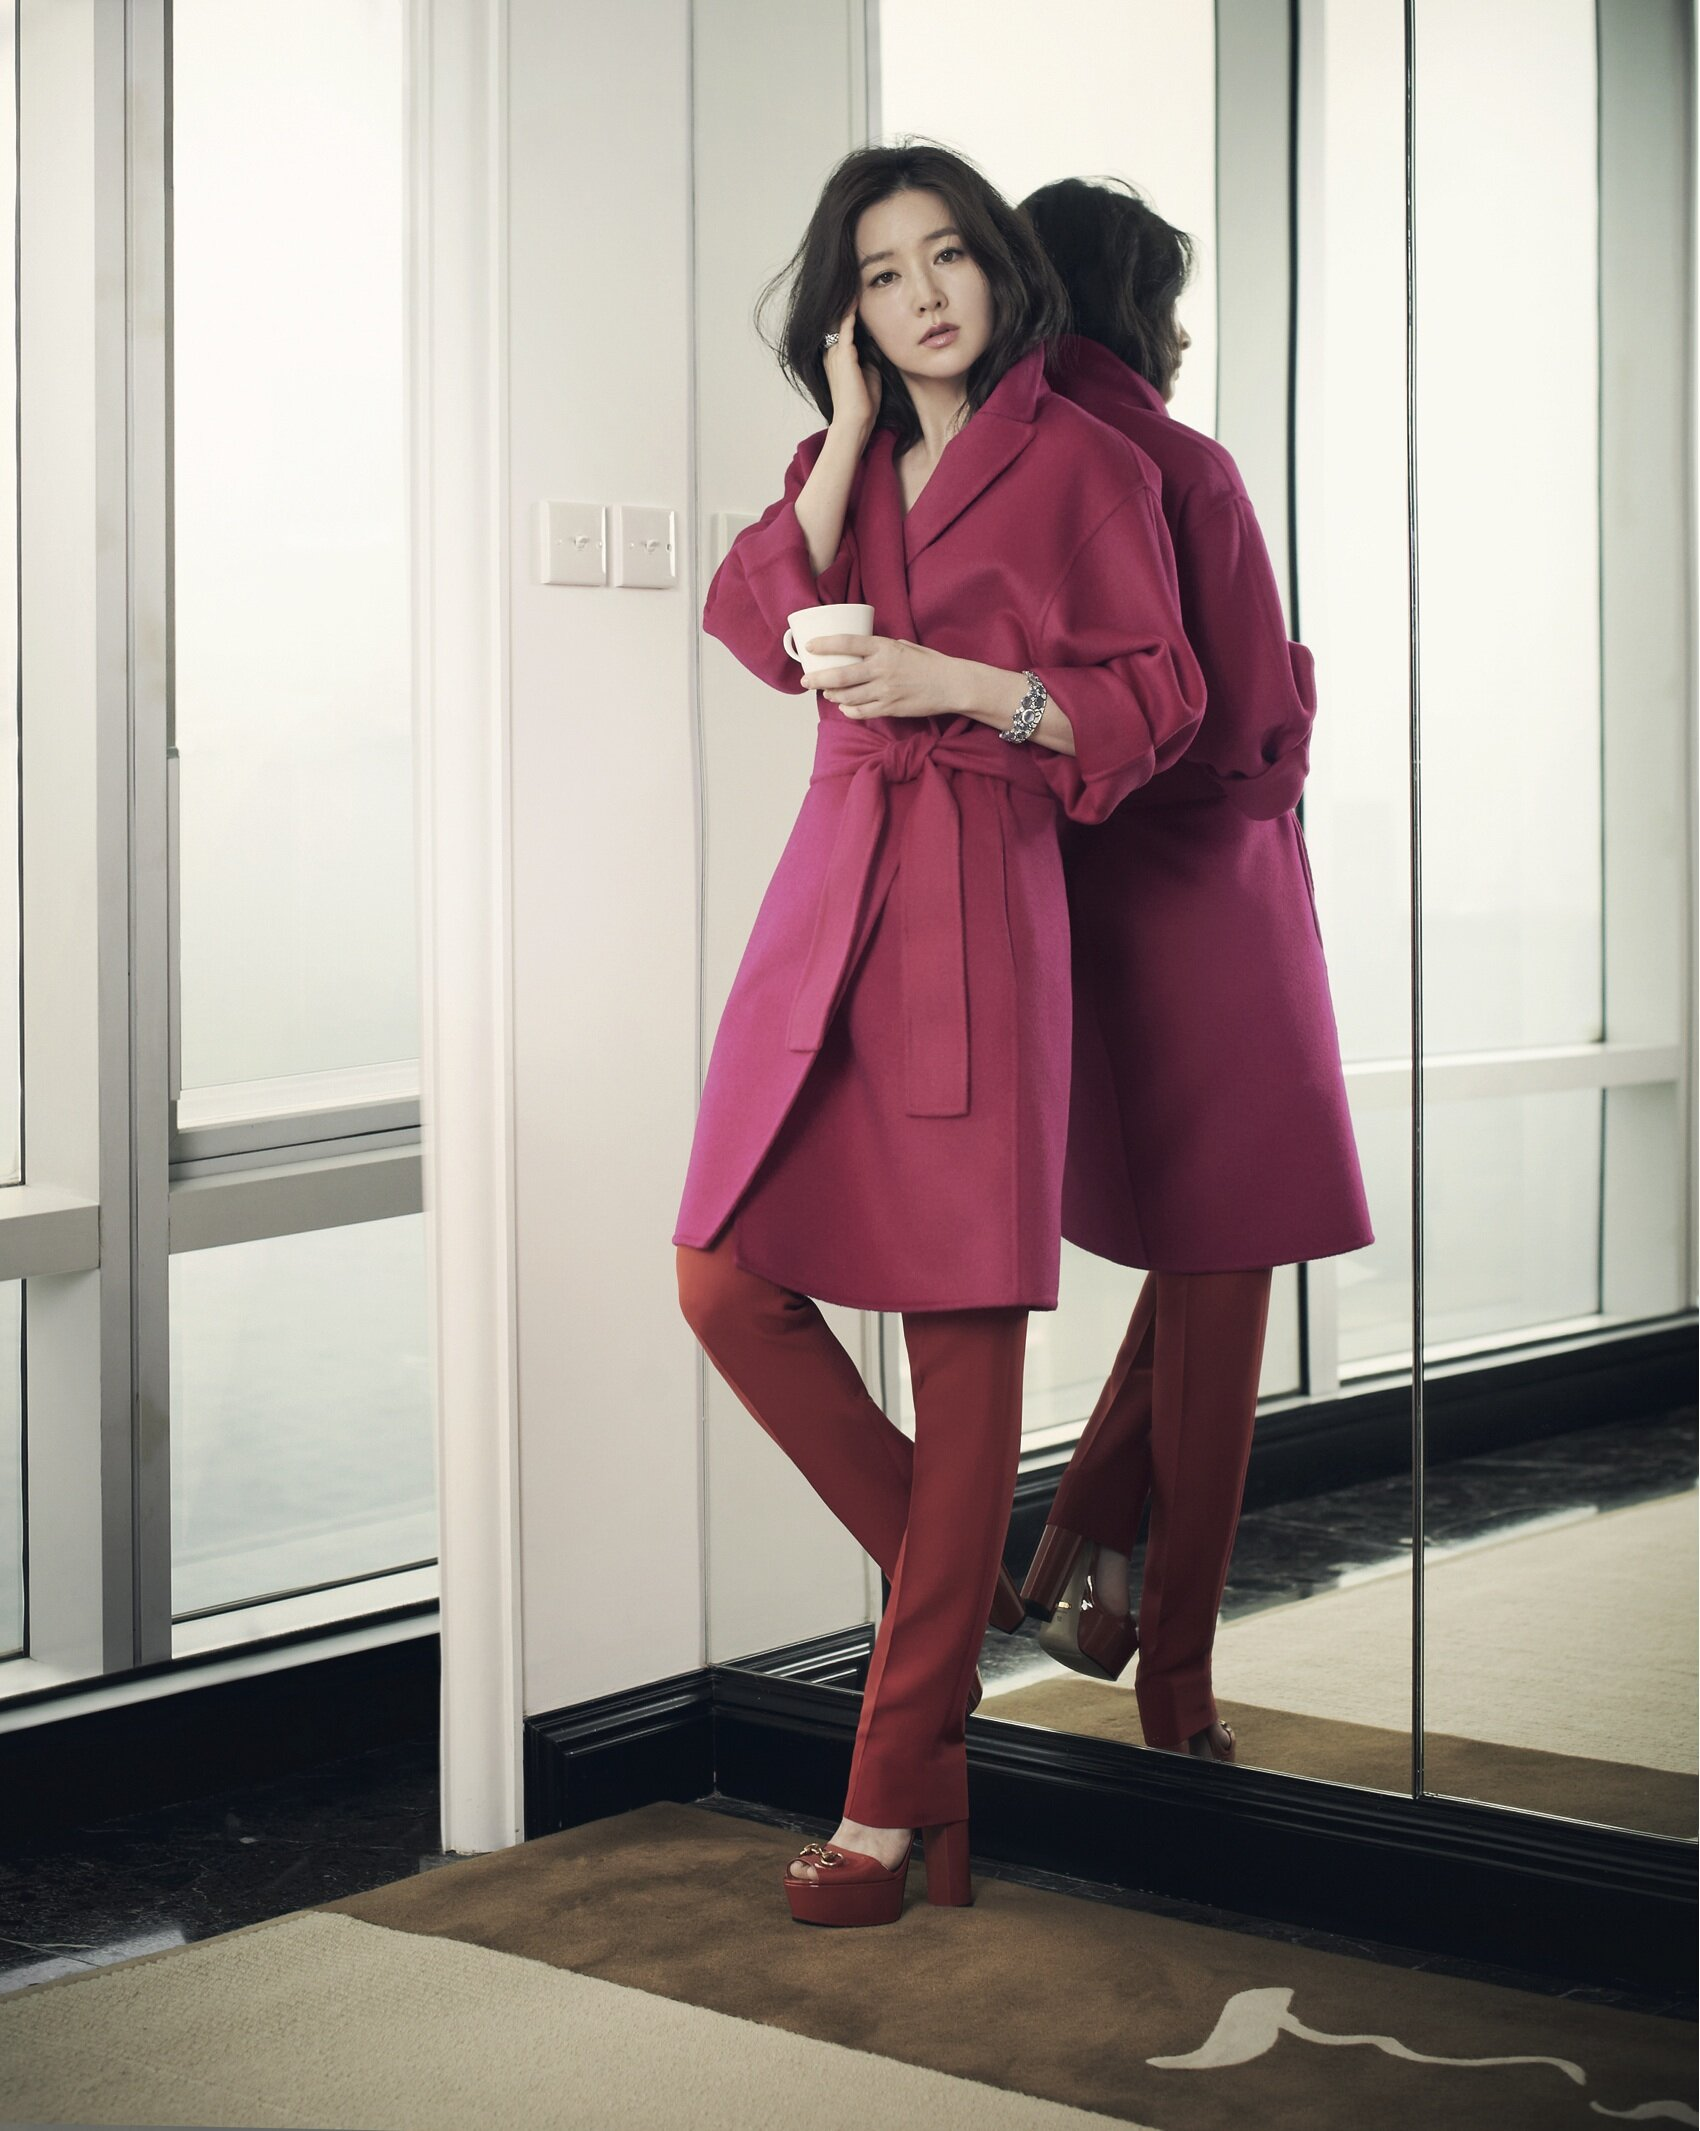 Lee Young Ae cover 2